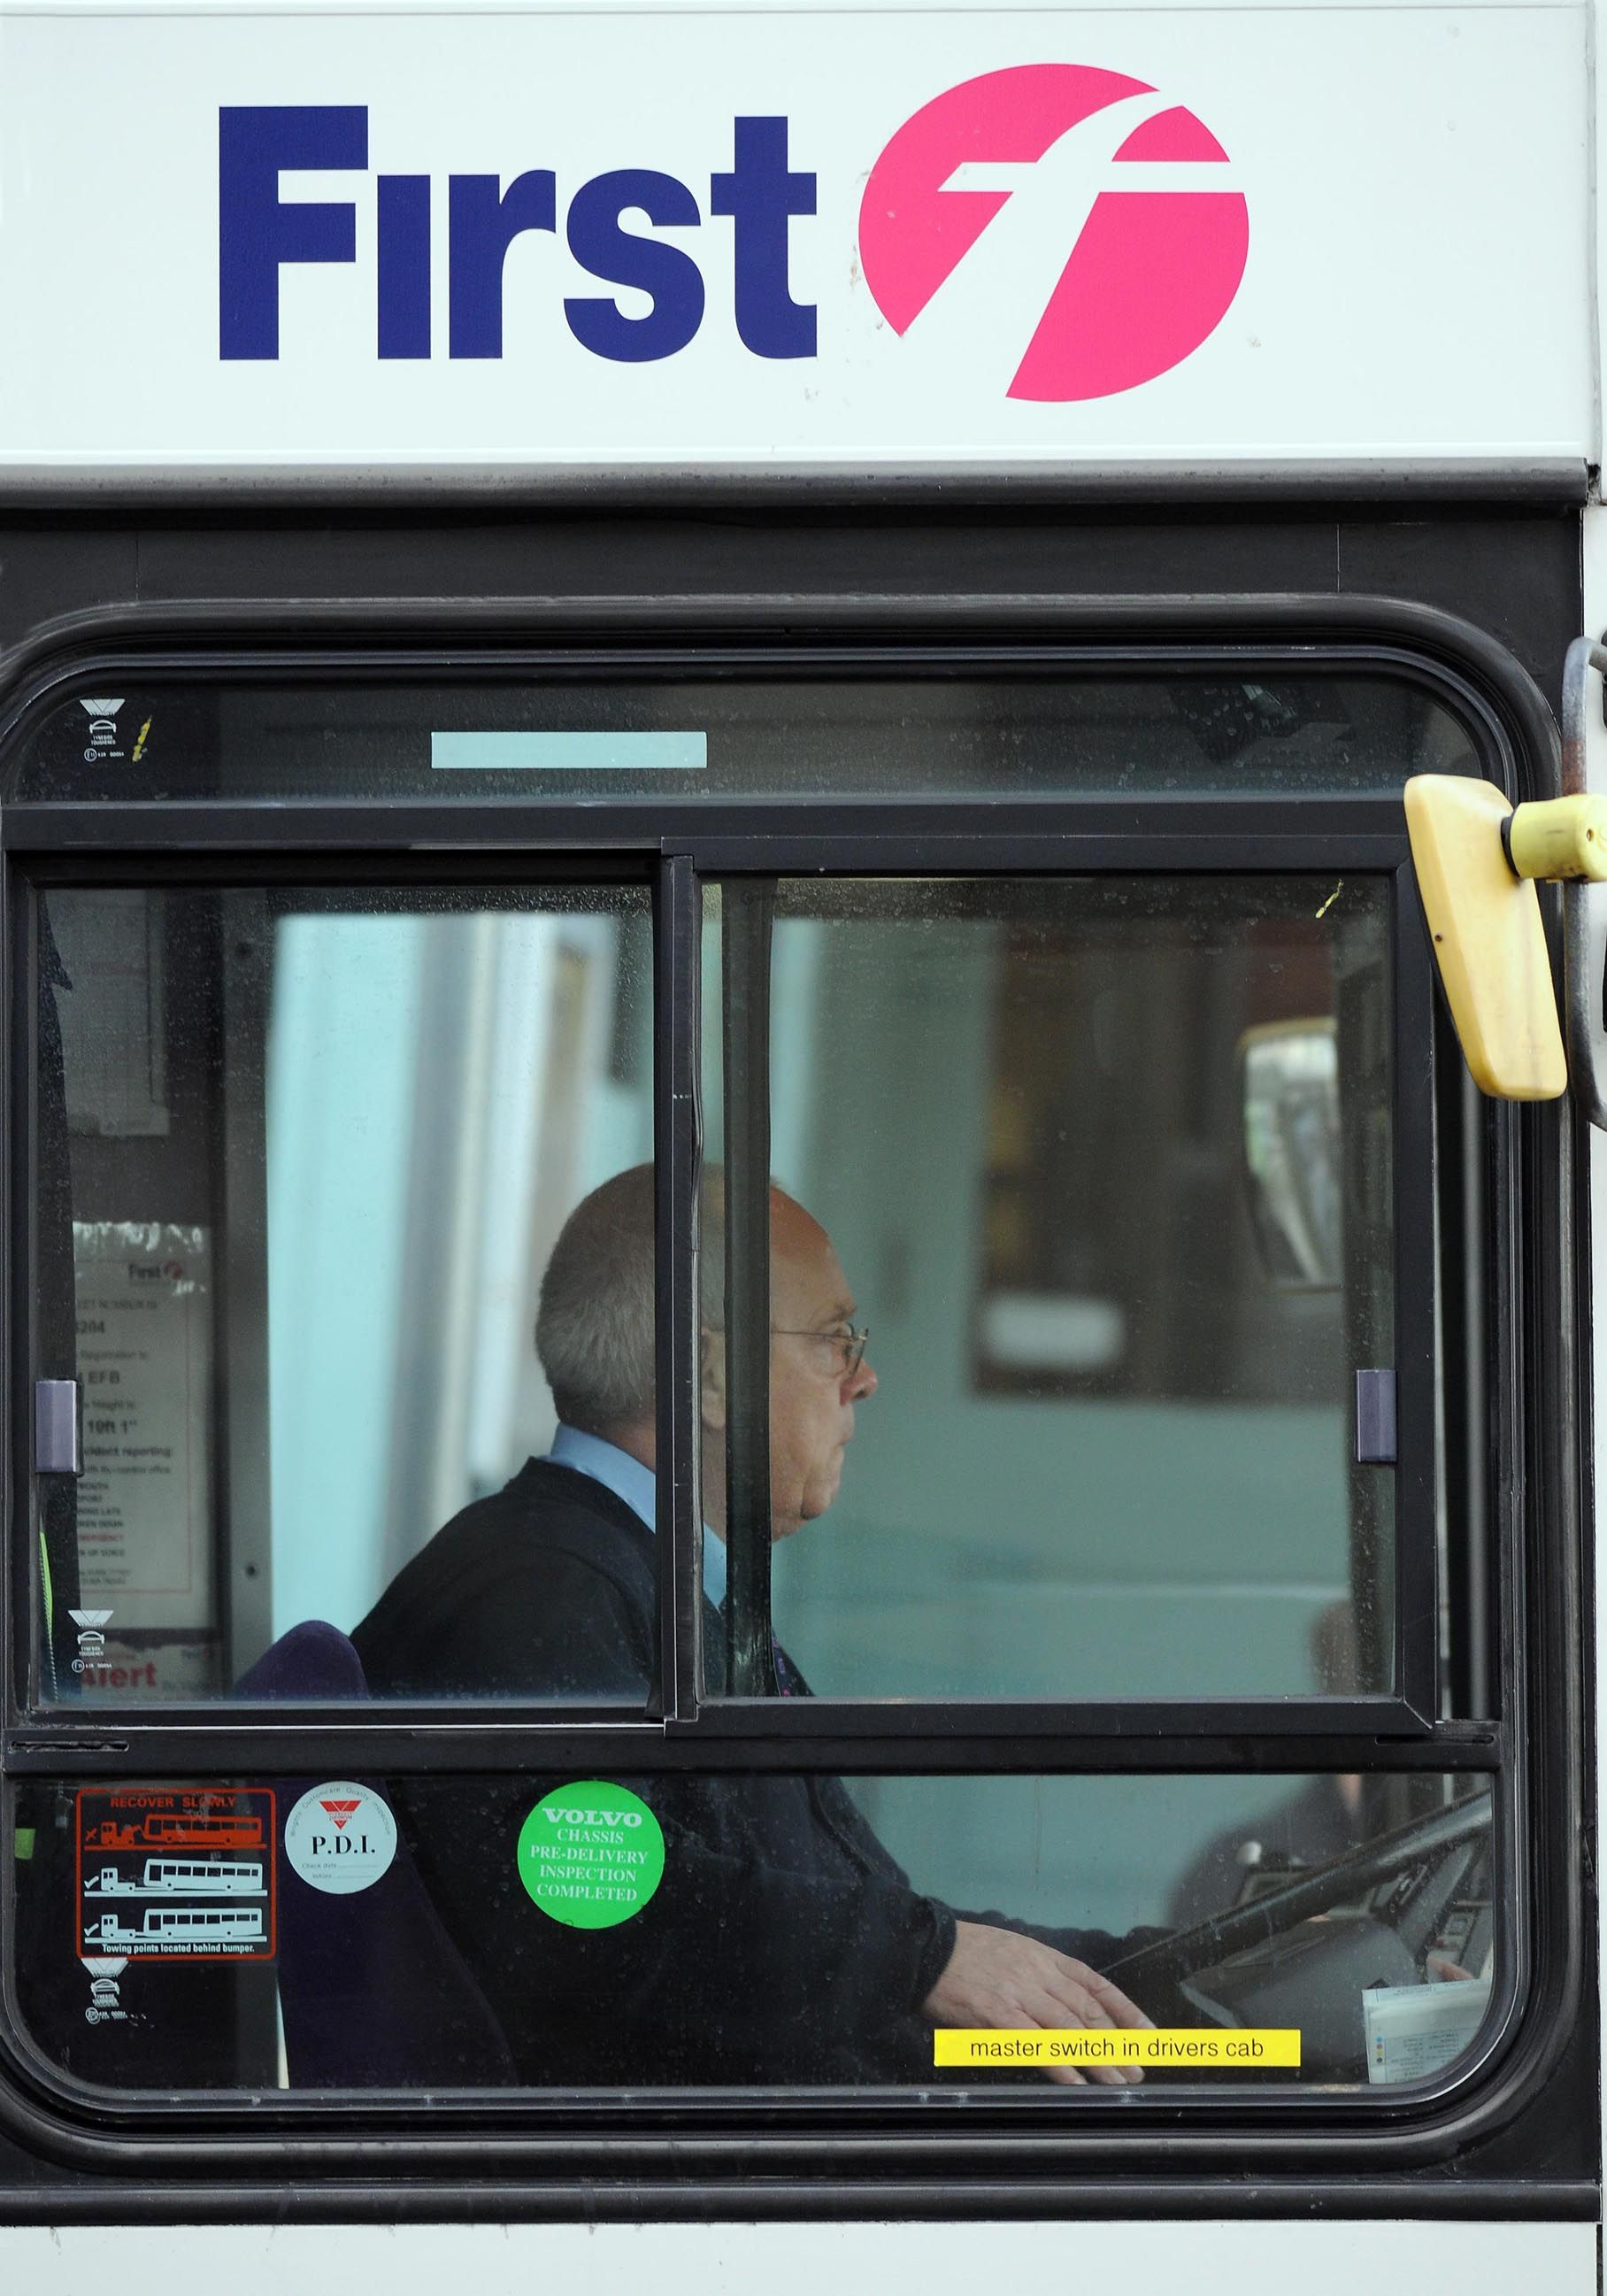 Talks held following bus driver strikes